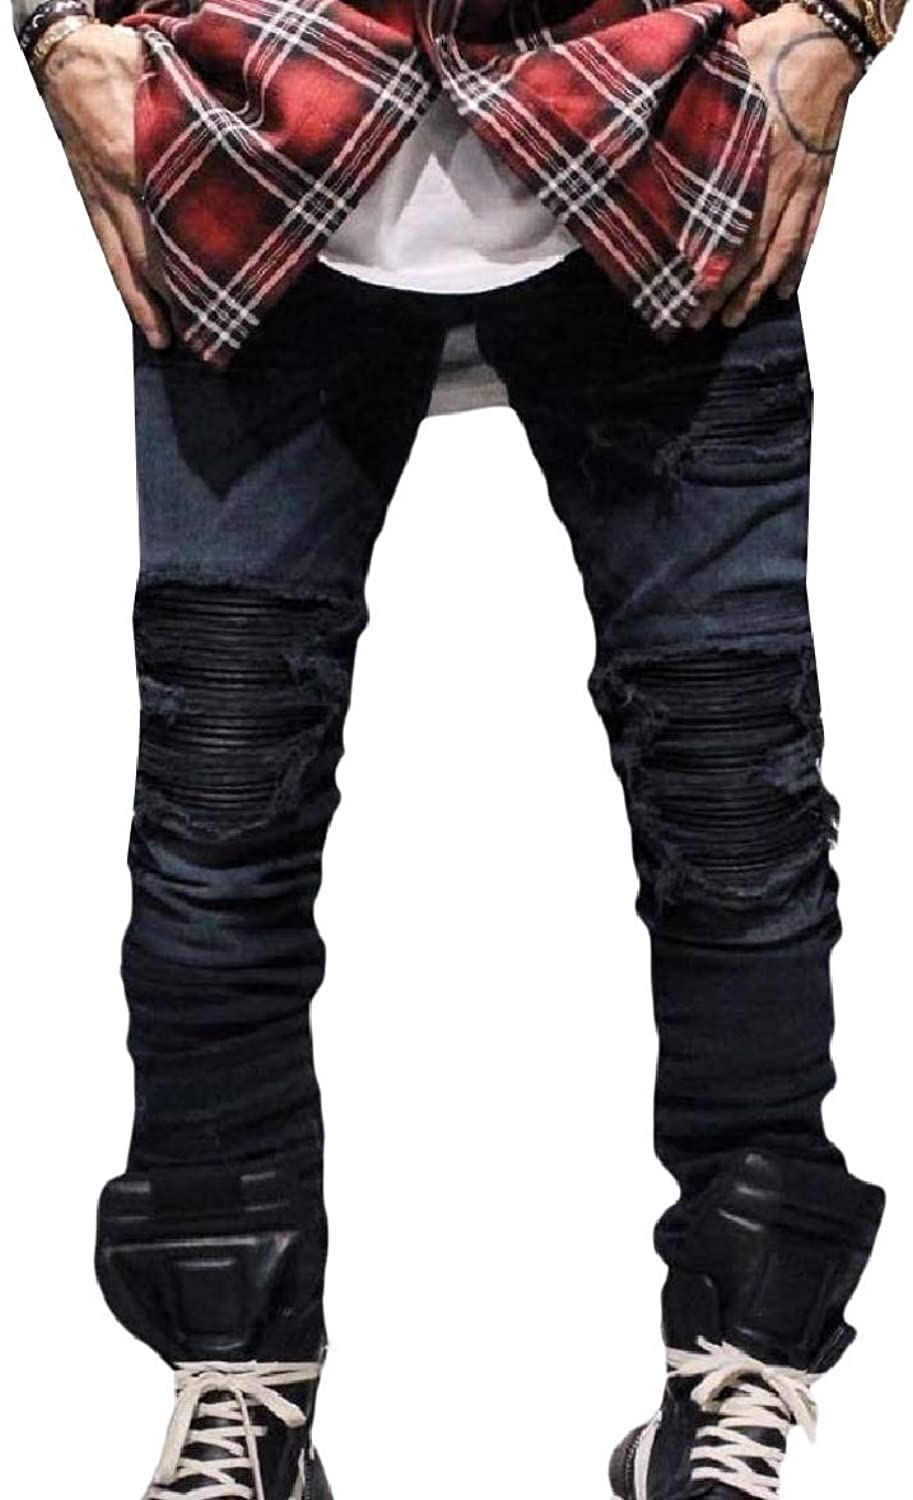 5a60c8ae8b4c5 Tootca Men Broken Hole Tapered Tapered Tapered Bomber Skinny Fashion  Trousers Hiphop Jeans dab824